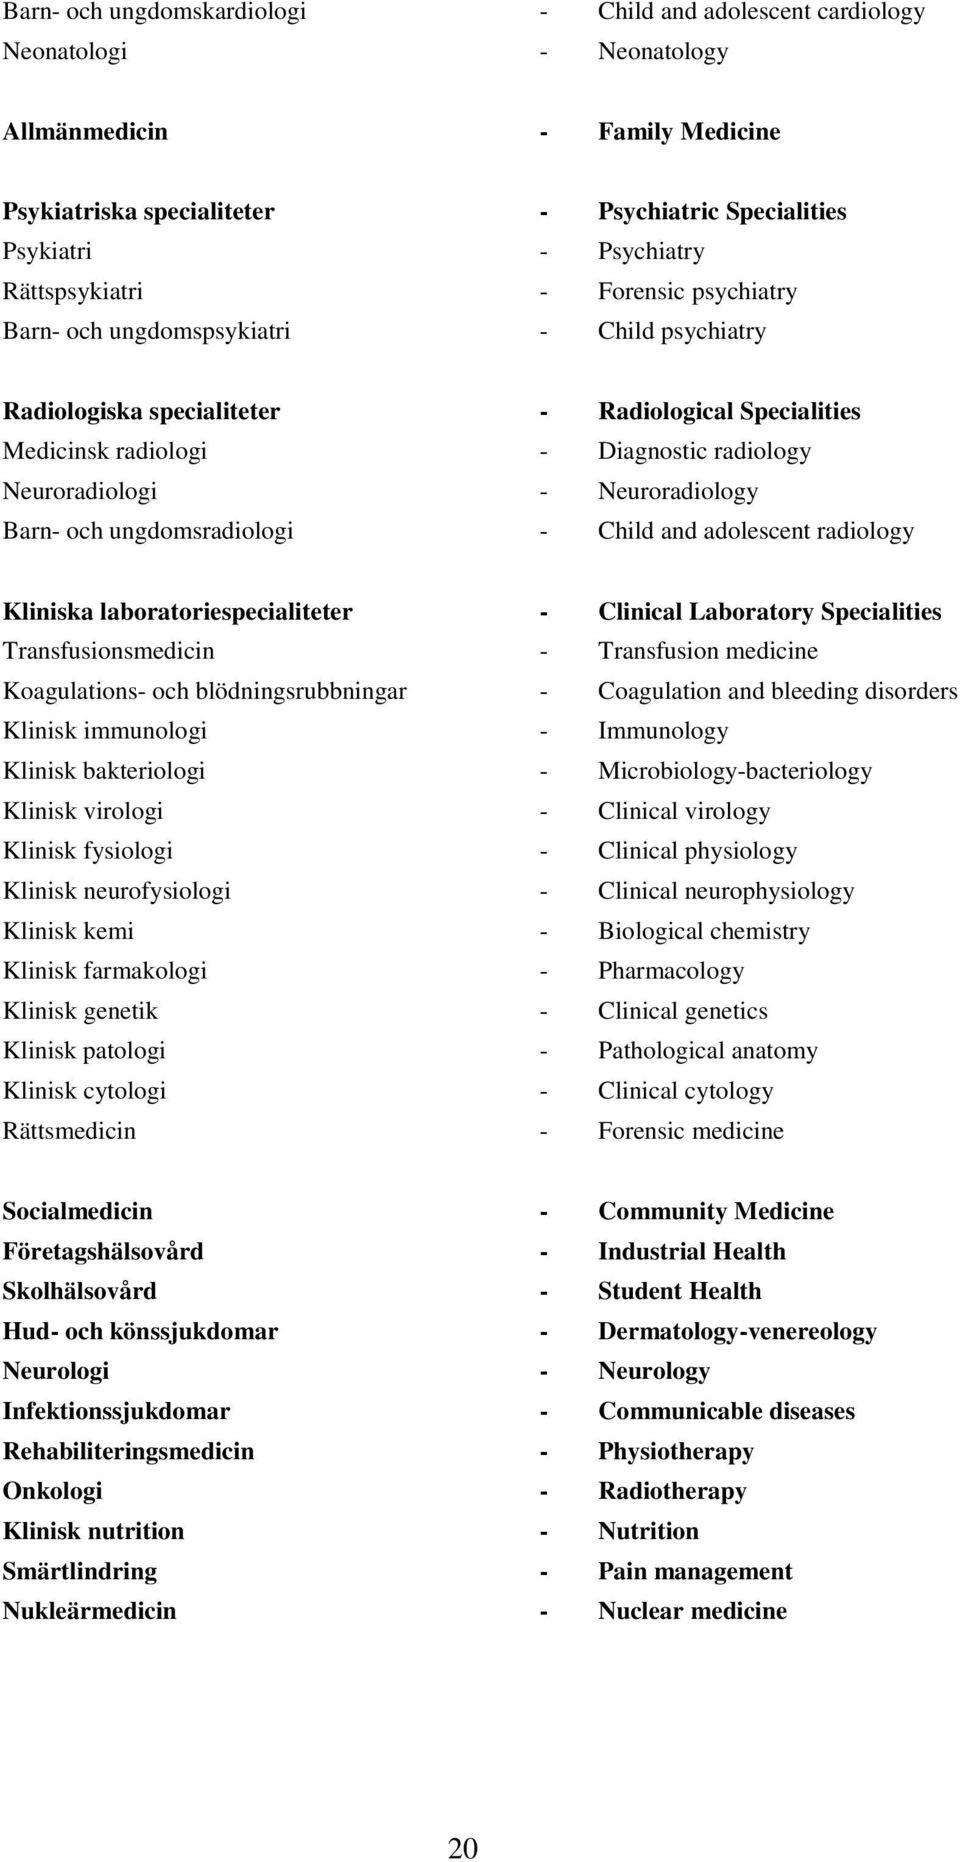 Neuroradiology Barn- och ungdomsradiologi - Child and adolescent radiology Kliniska laboratoriespecialiteter - Clinical Laboratory Specialities Transfusionsmedicin - Transfusion medicine